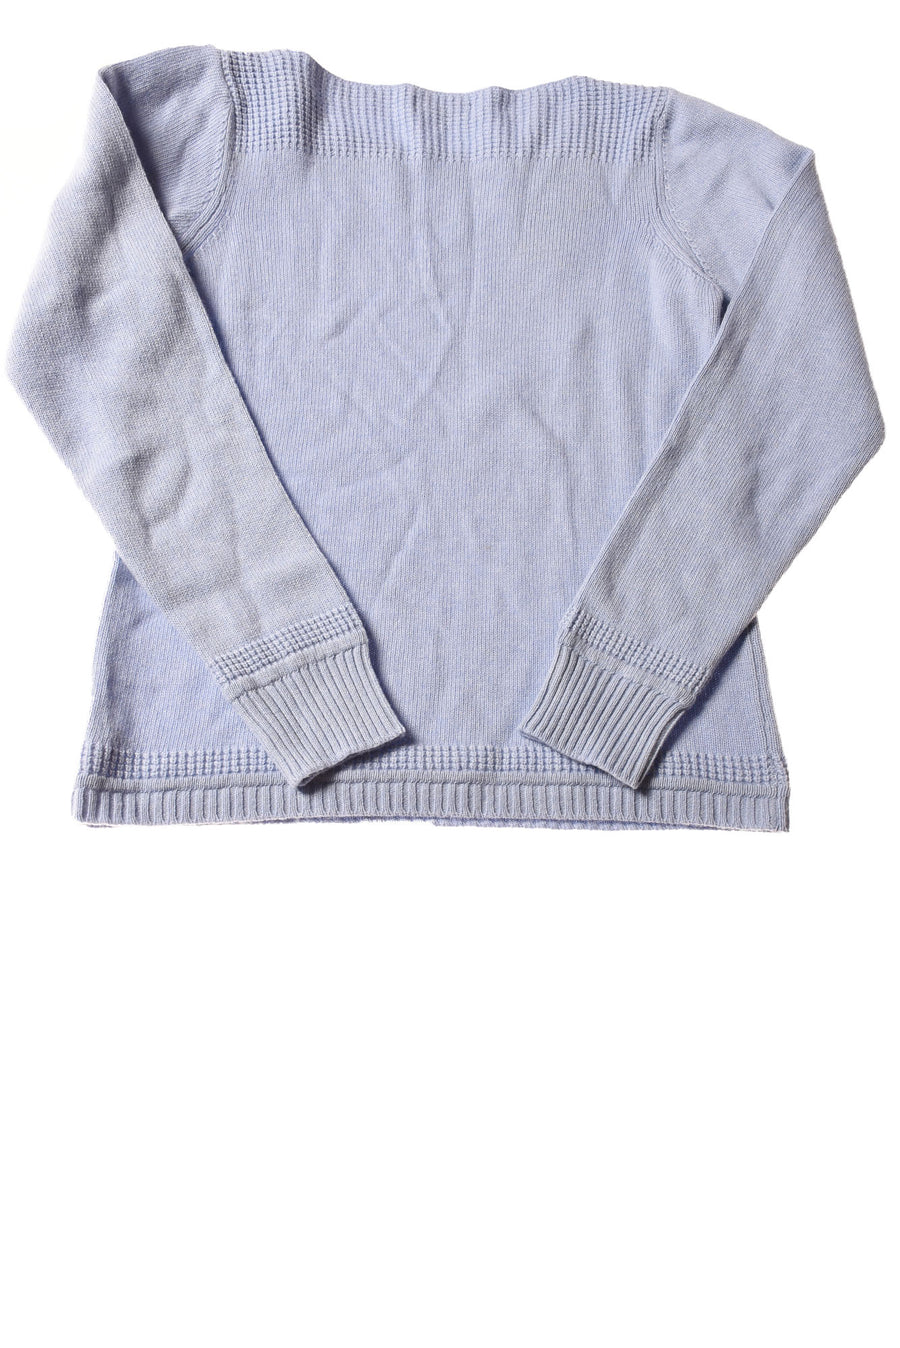 NEW Benedetta B. Women's Sweater Large Blue